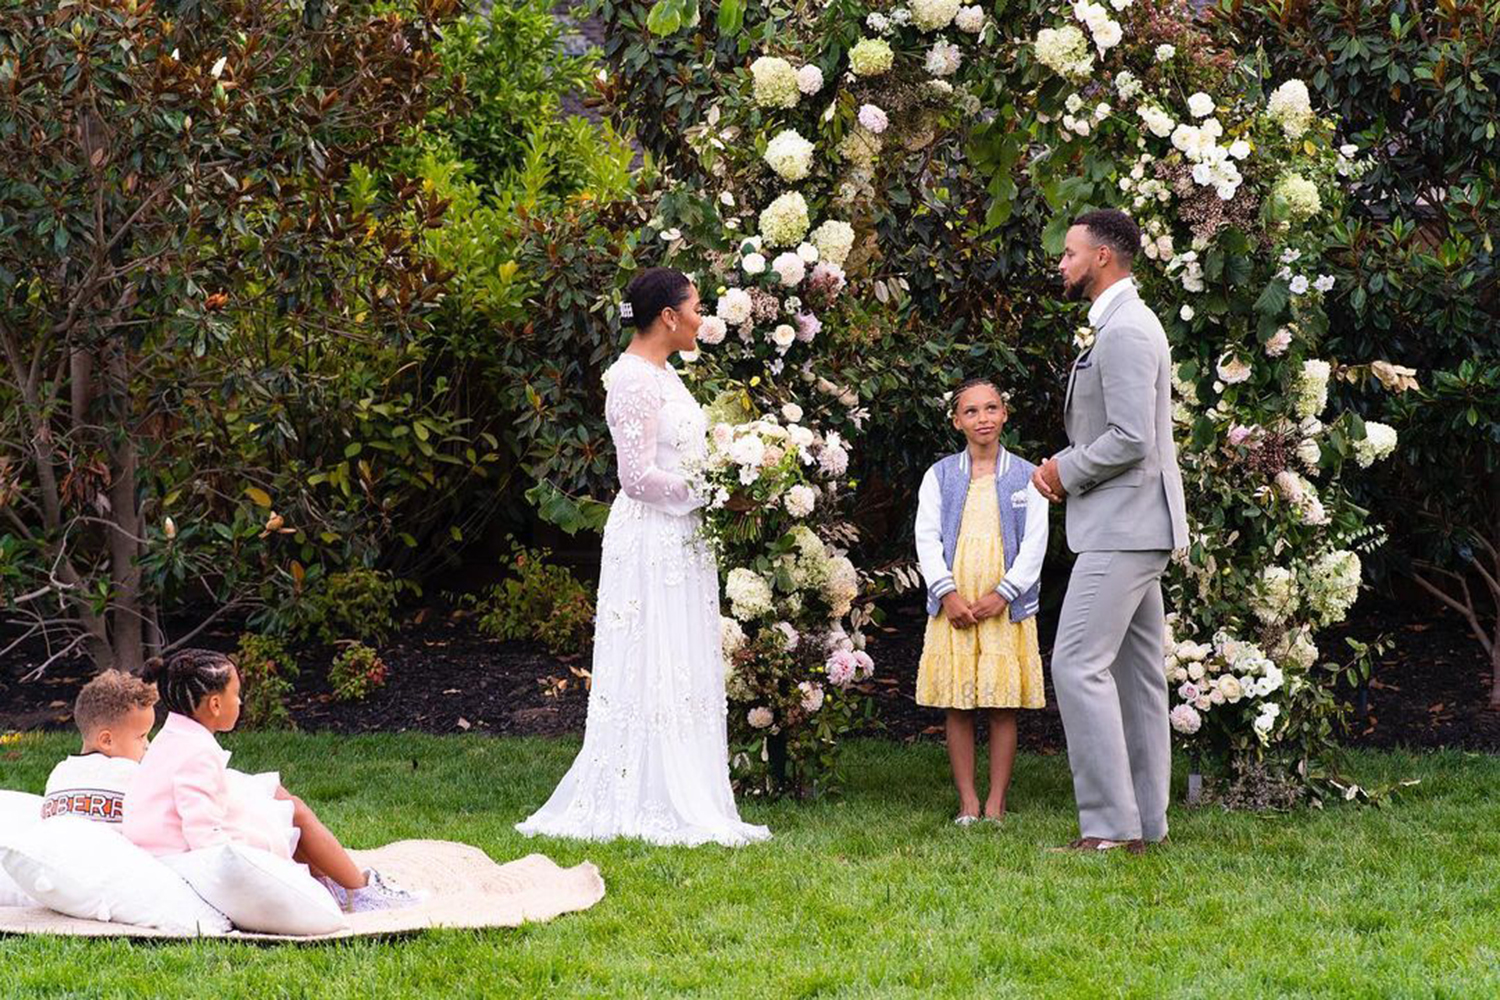 Steph Curry Surprises Wife Ayesha With a Vow Renewal Ceremony For 10th Wedding Anniversary